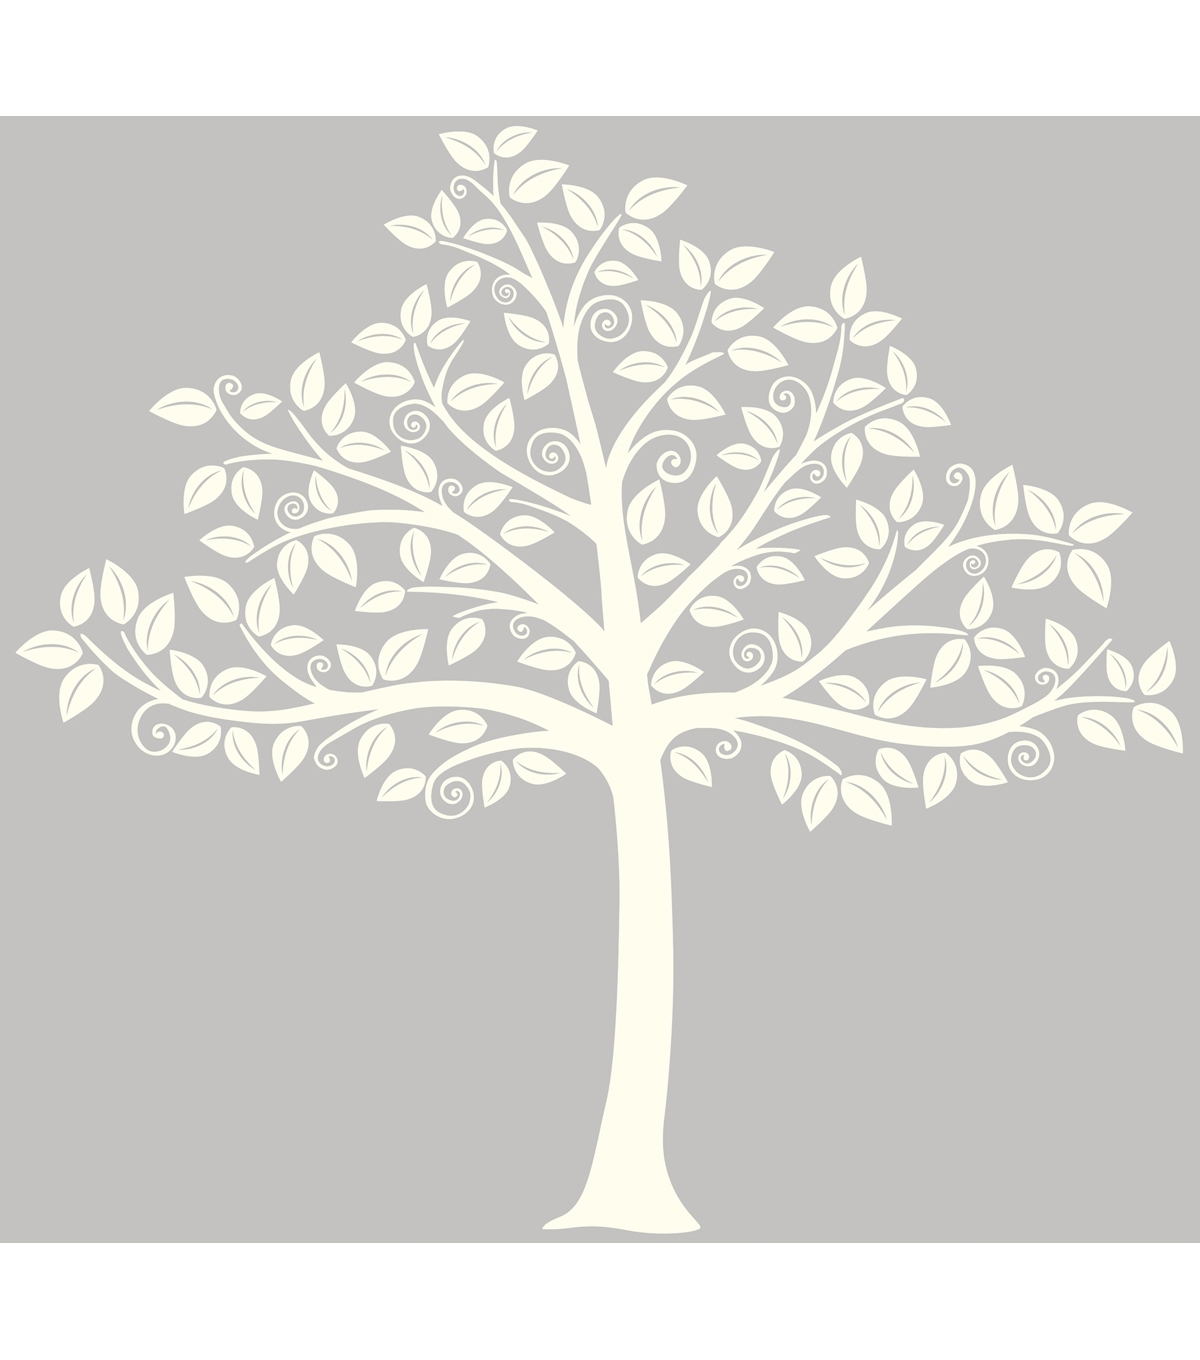 Wall Pops Silhouette Tree Wall Art Decal Kit, 129 Piece Set | Joann Throughout Most Recently Released Joann Fabric Wall Art (Gallery 2 of 15)